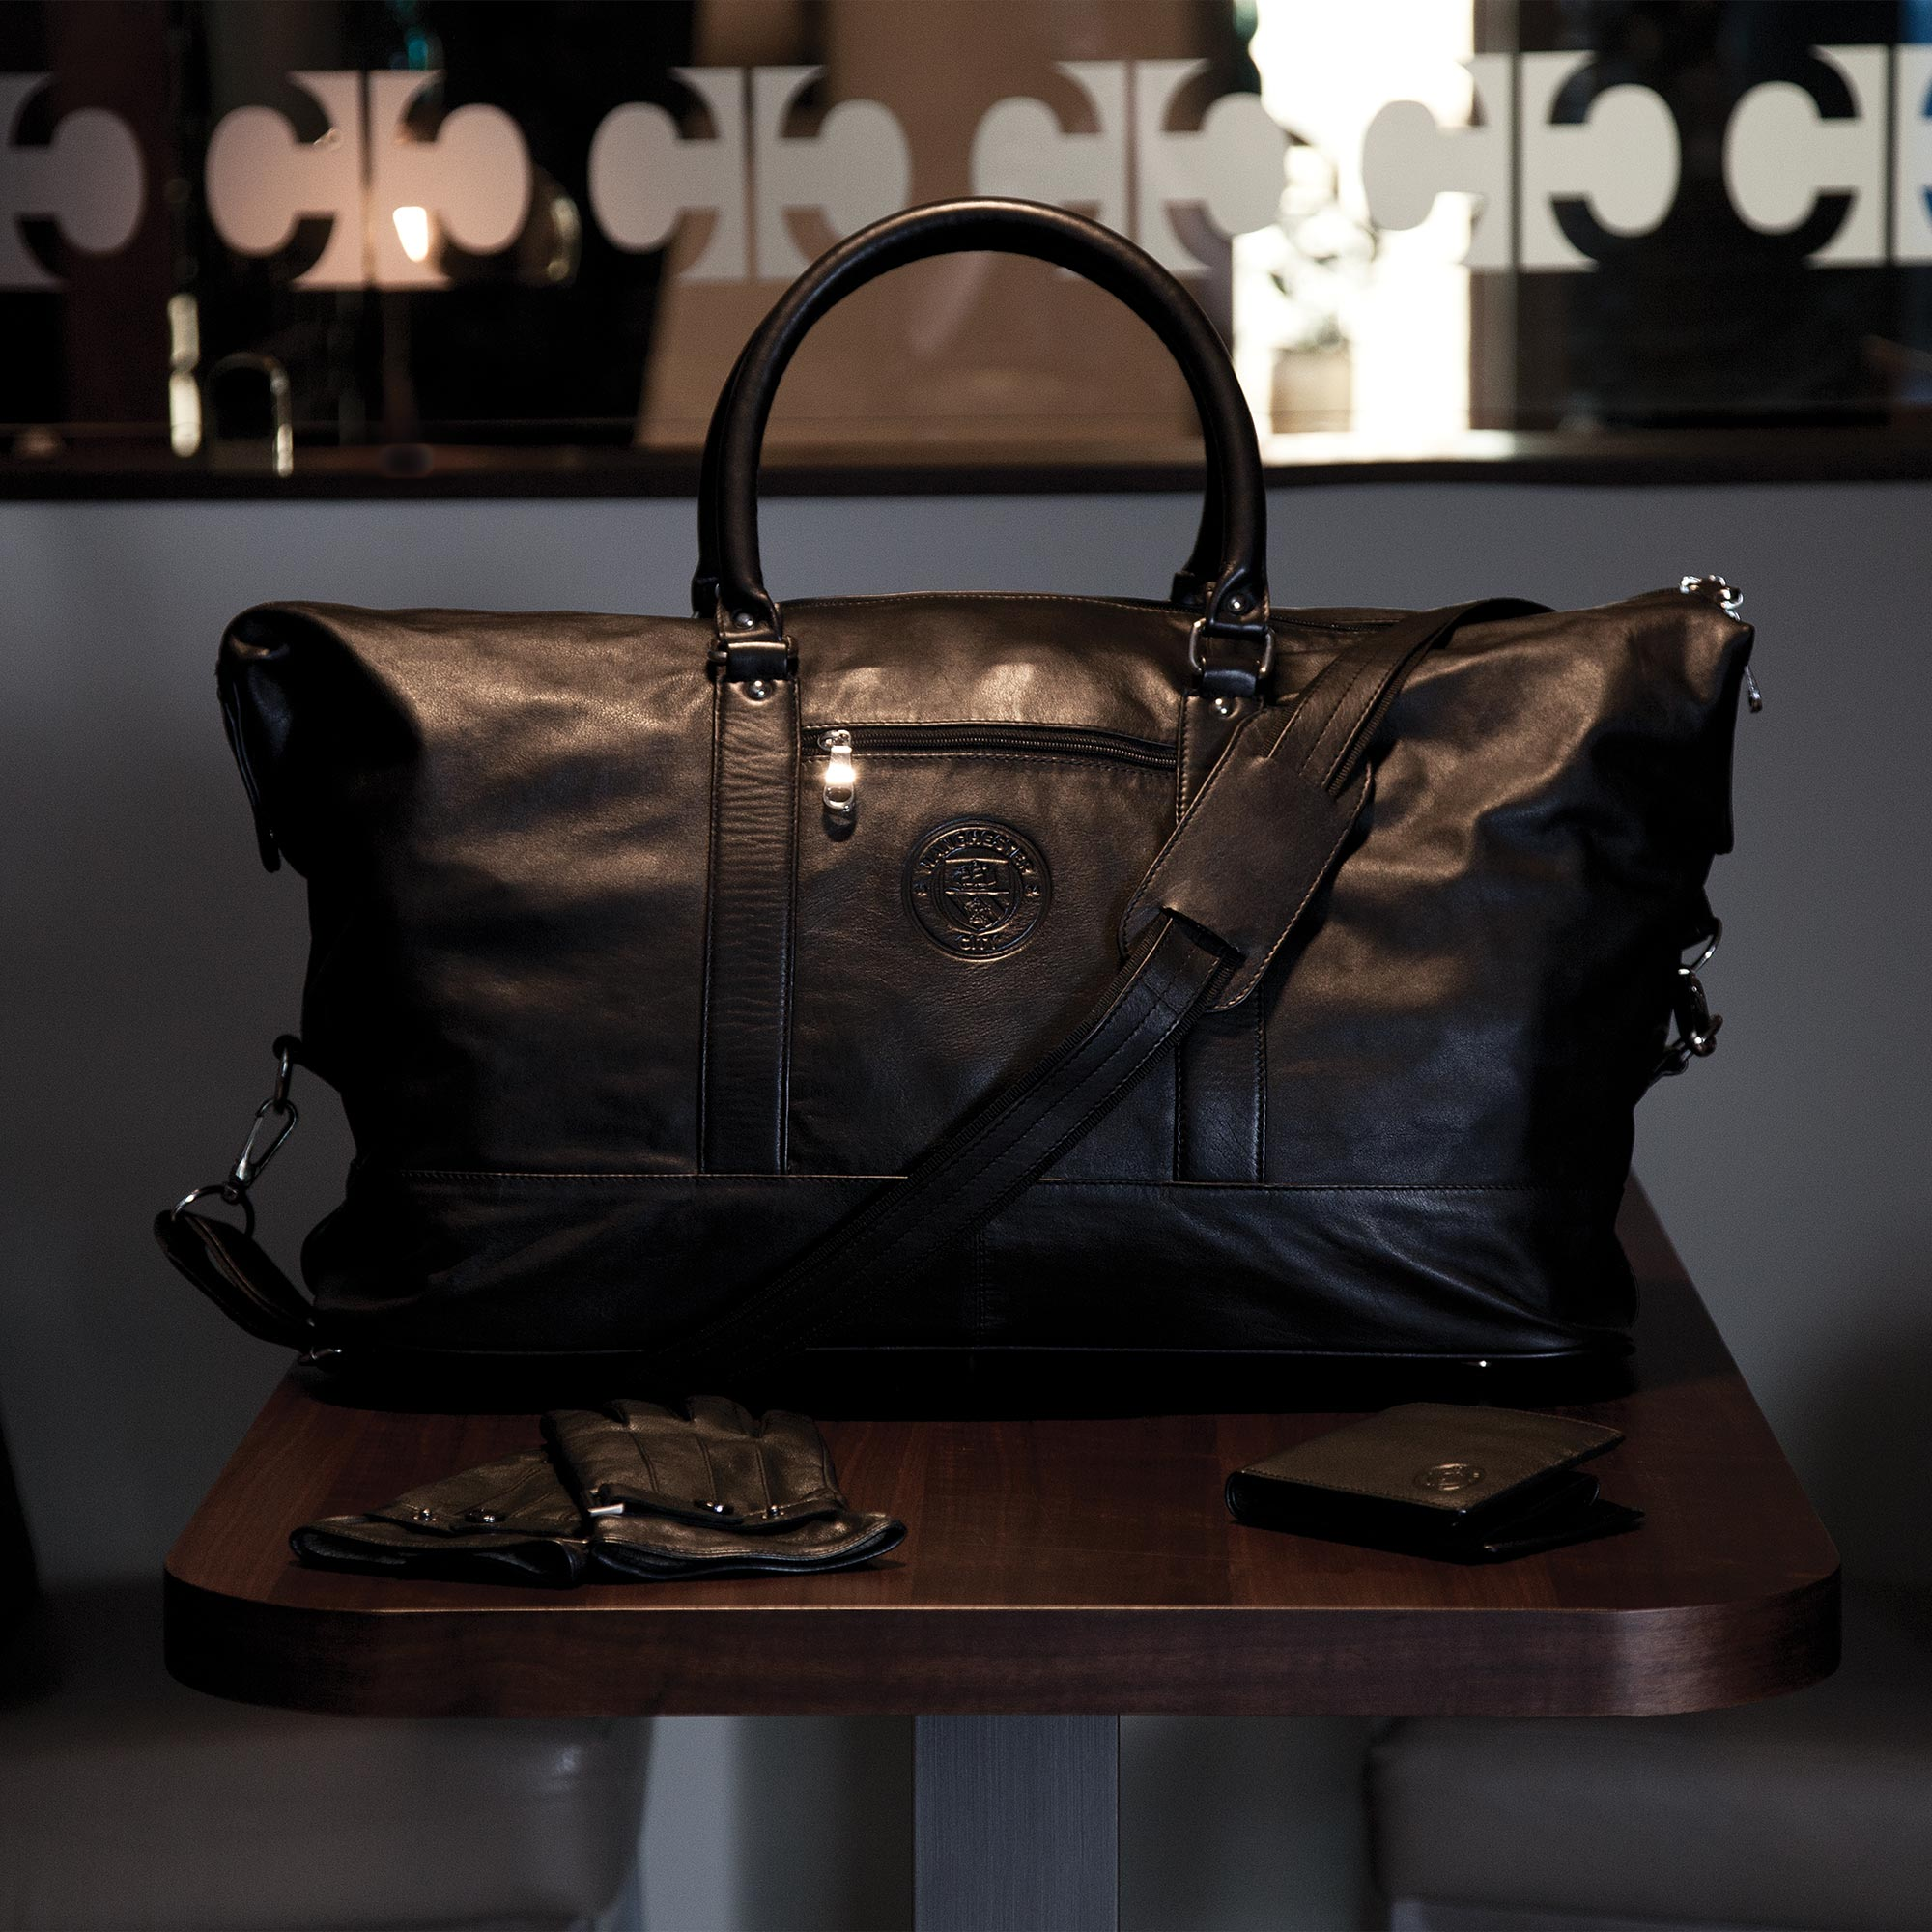 Manchester City 1894 Nappa Leather Travel Bag